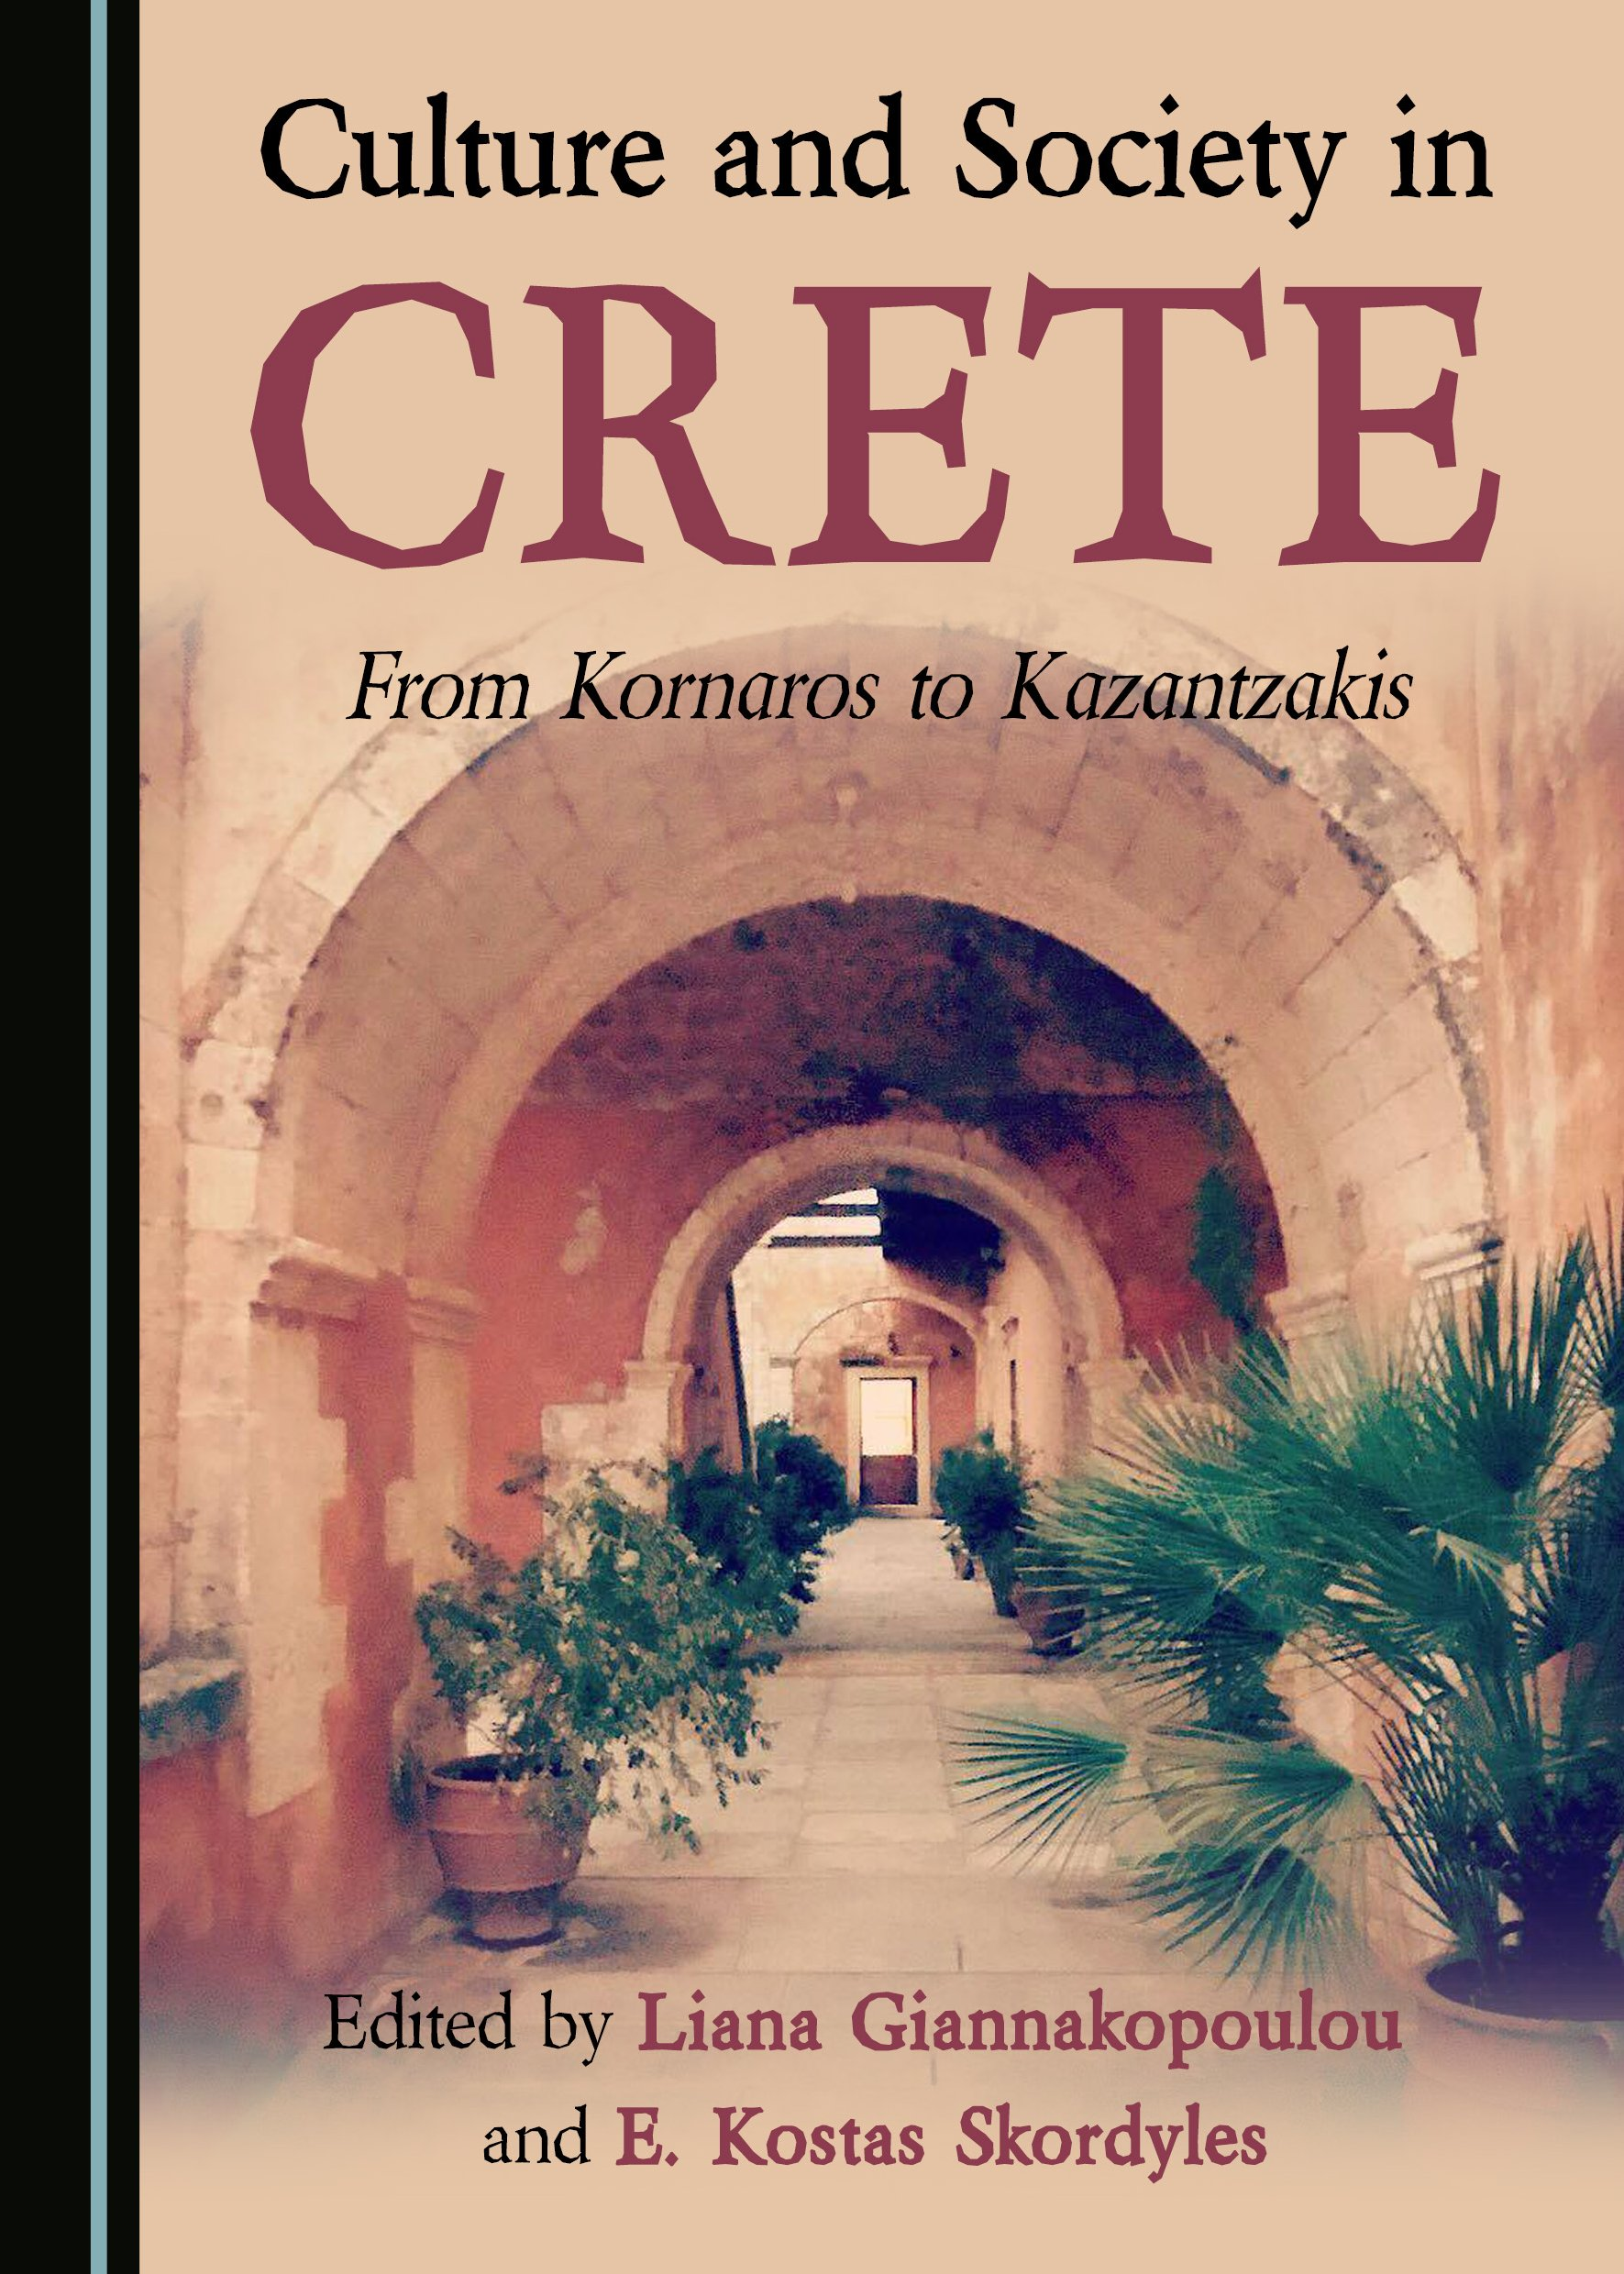 Culture and Society in Crete: From Kornaros to Kazantzakis